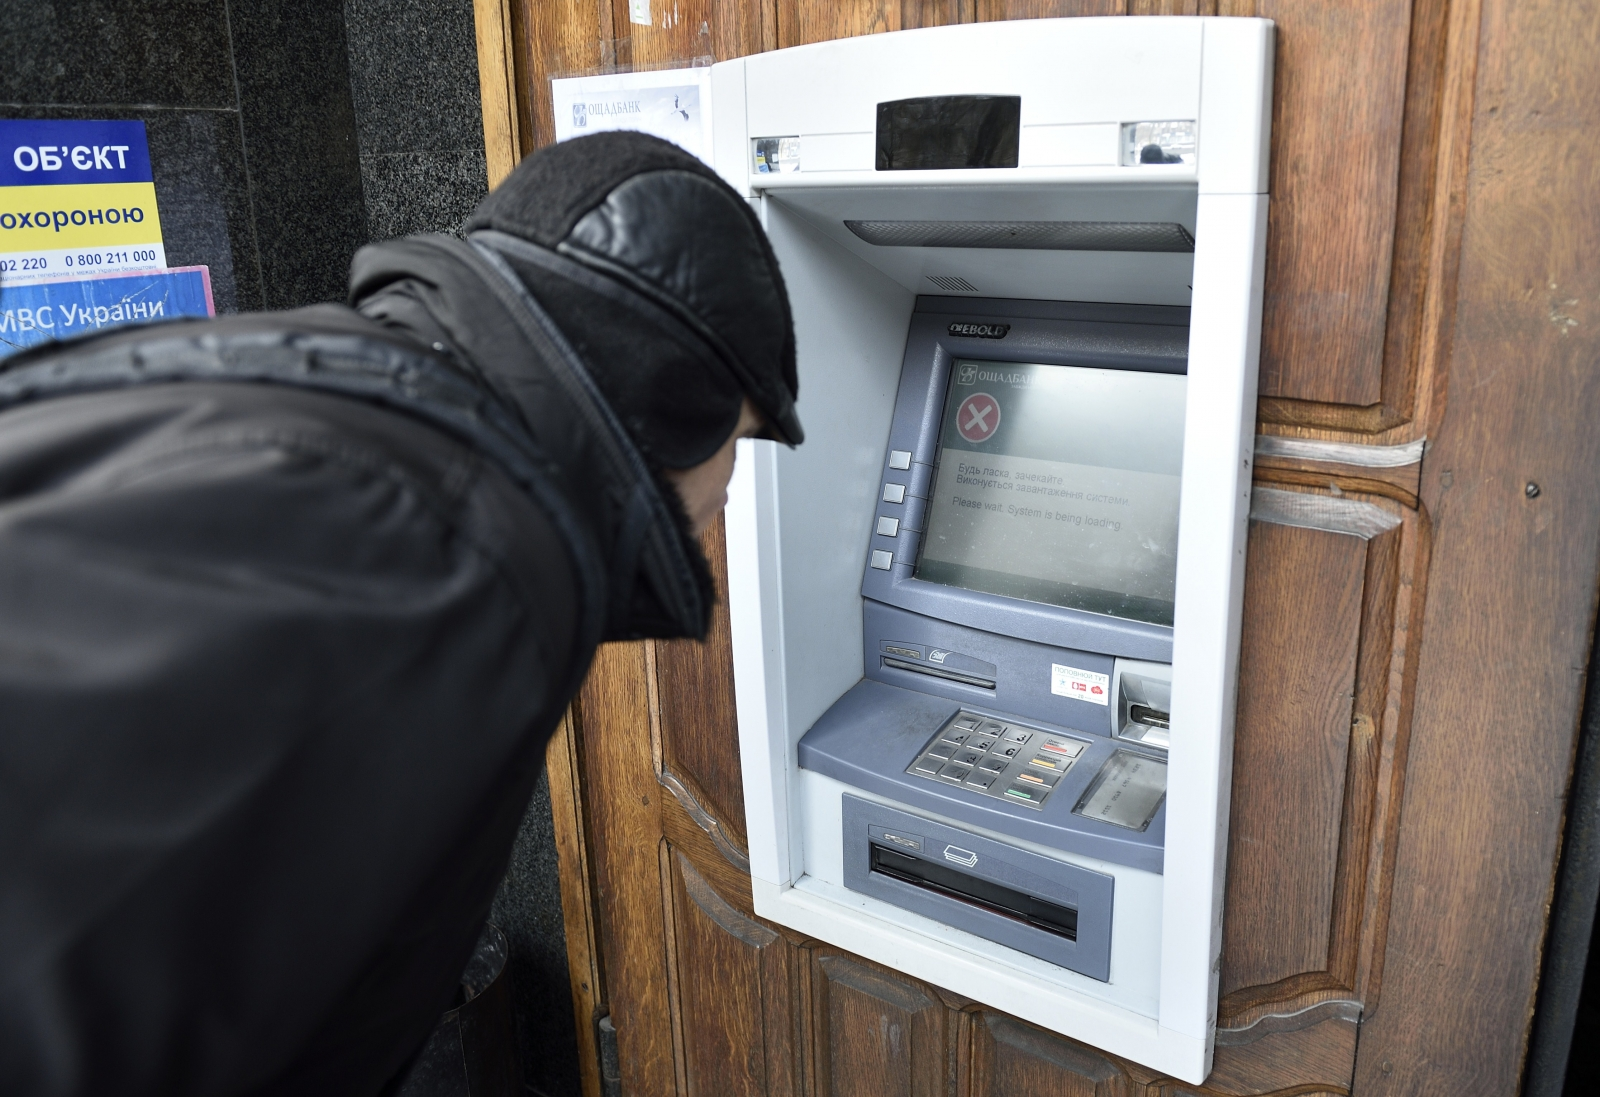 A man stands in front an ATM machine which is out of order, on November 26, 2014 in the eastern Ukrainian city of Donetsk